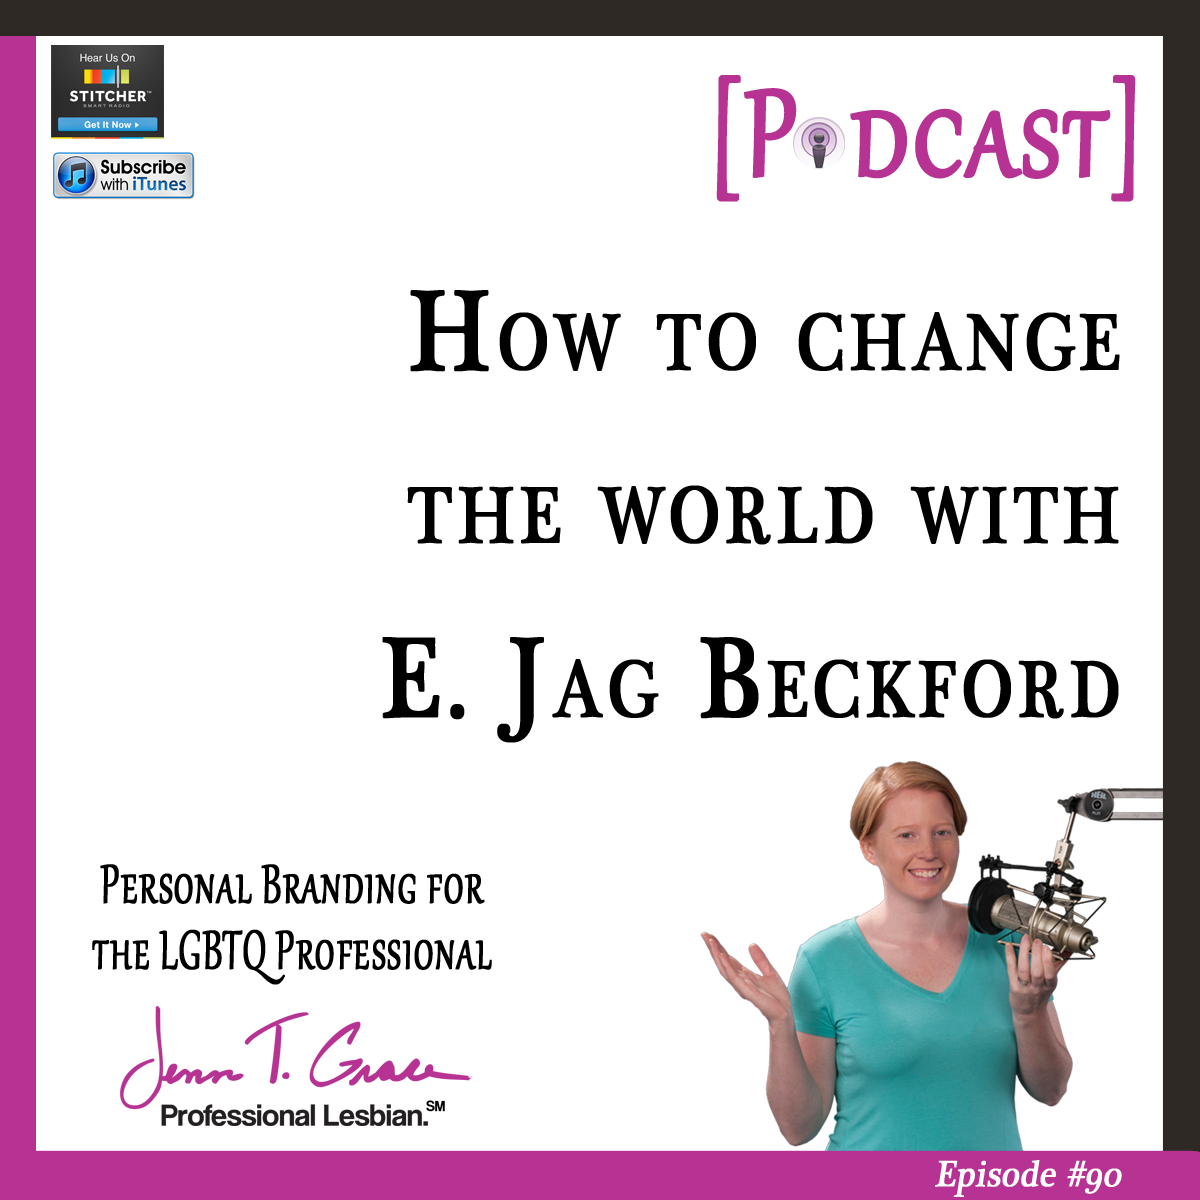 #90 - How to Change the World with E. Jag Beckford